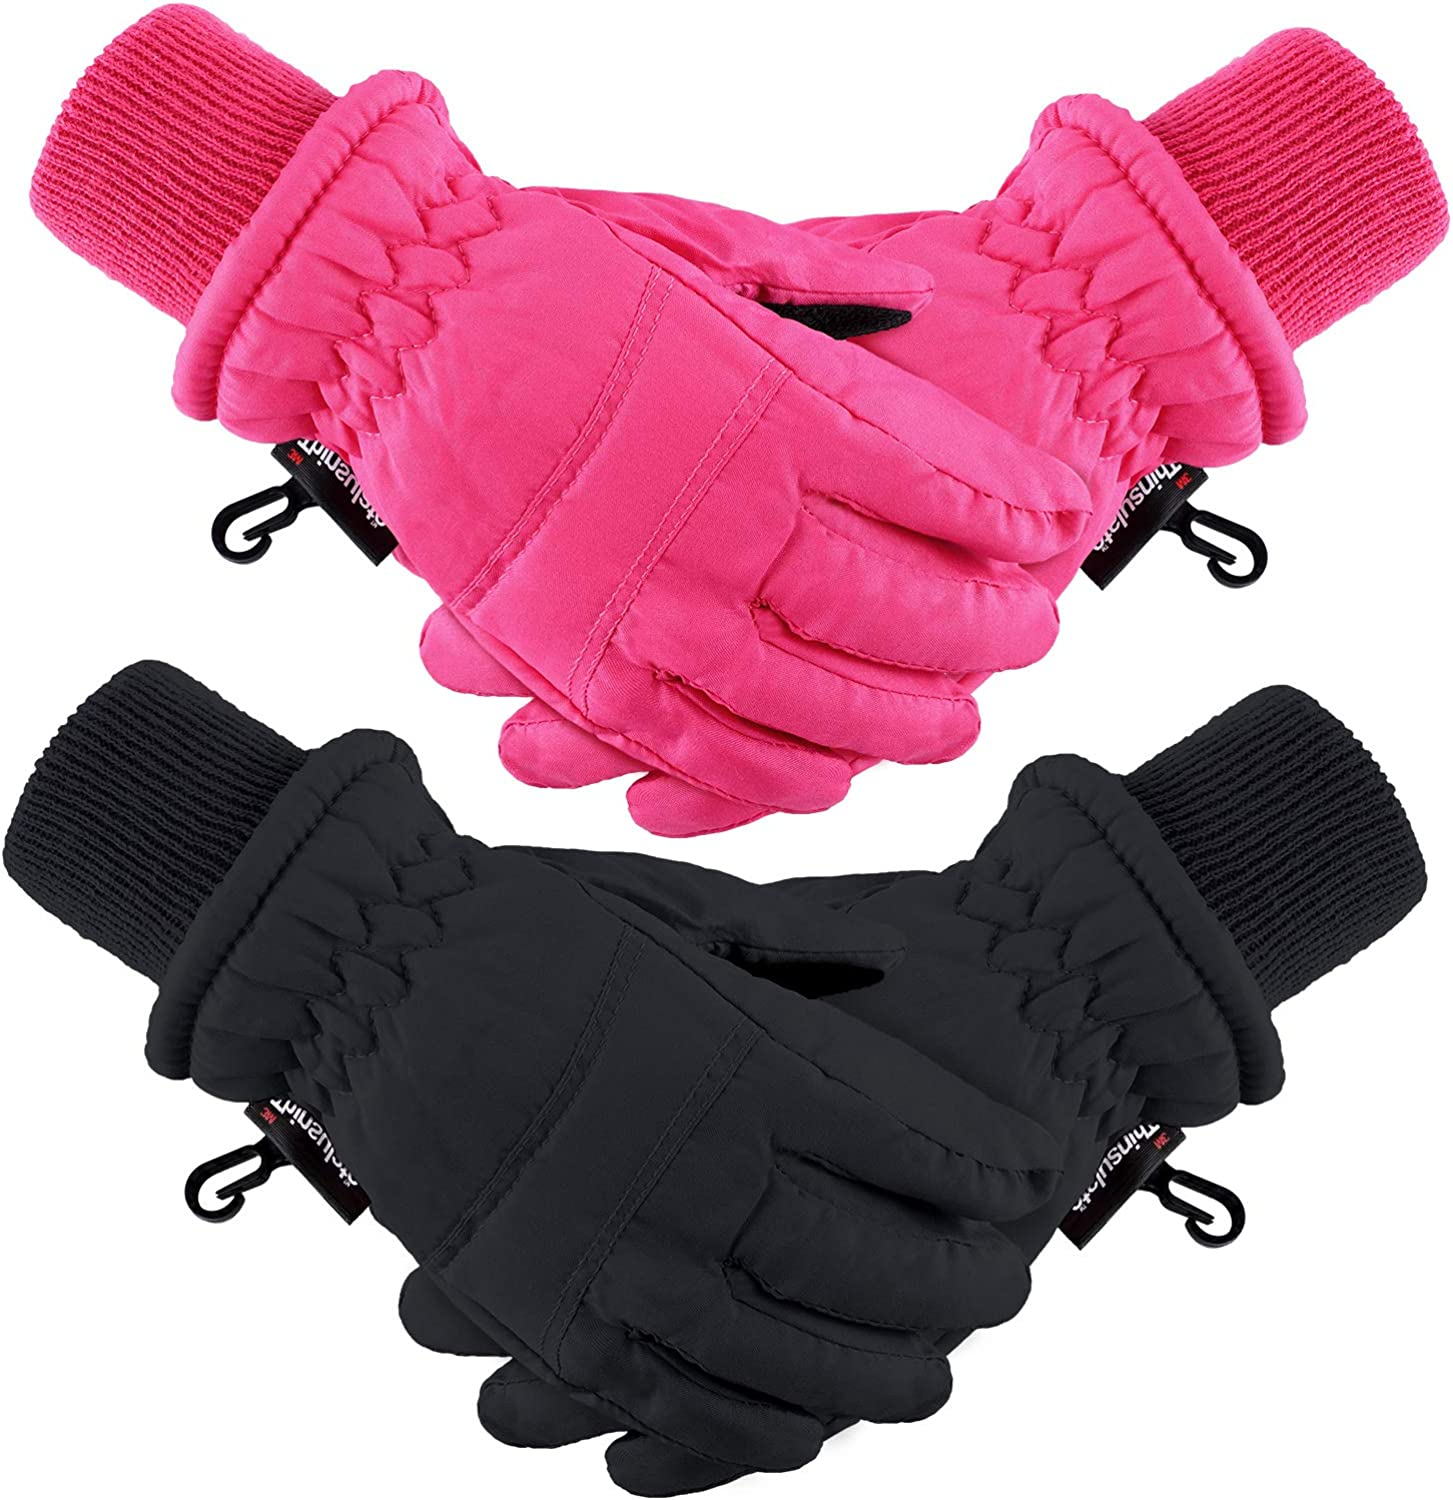 2 Pairs Kids Winter Ski Gloves Waterproof Warm Snow Mittens...